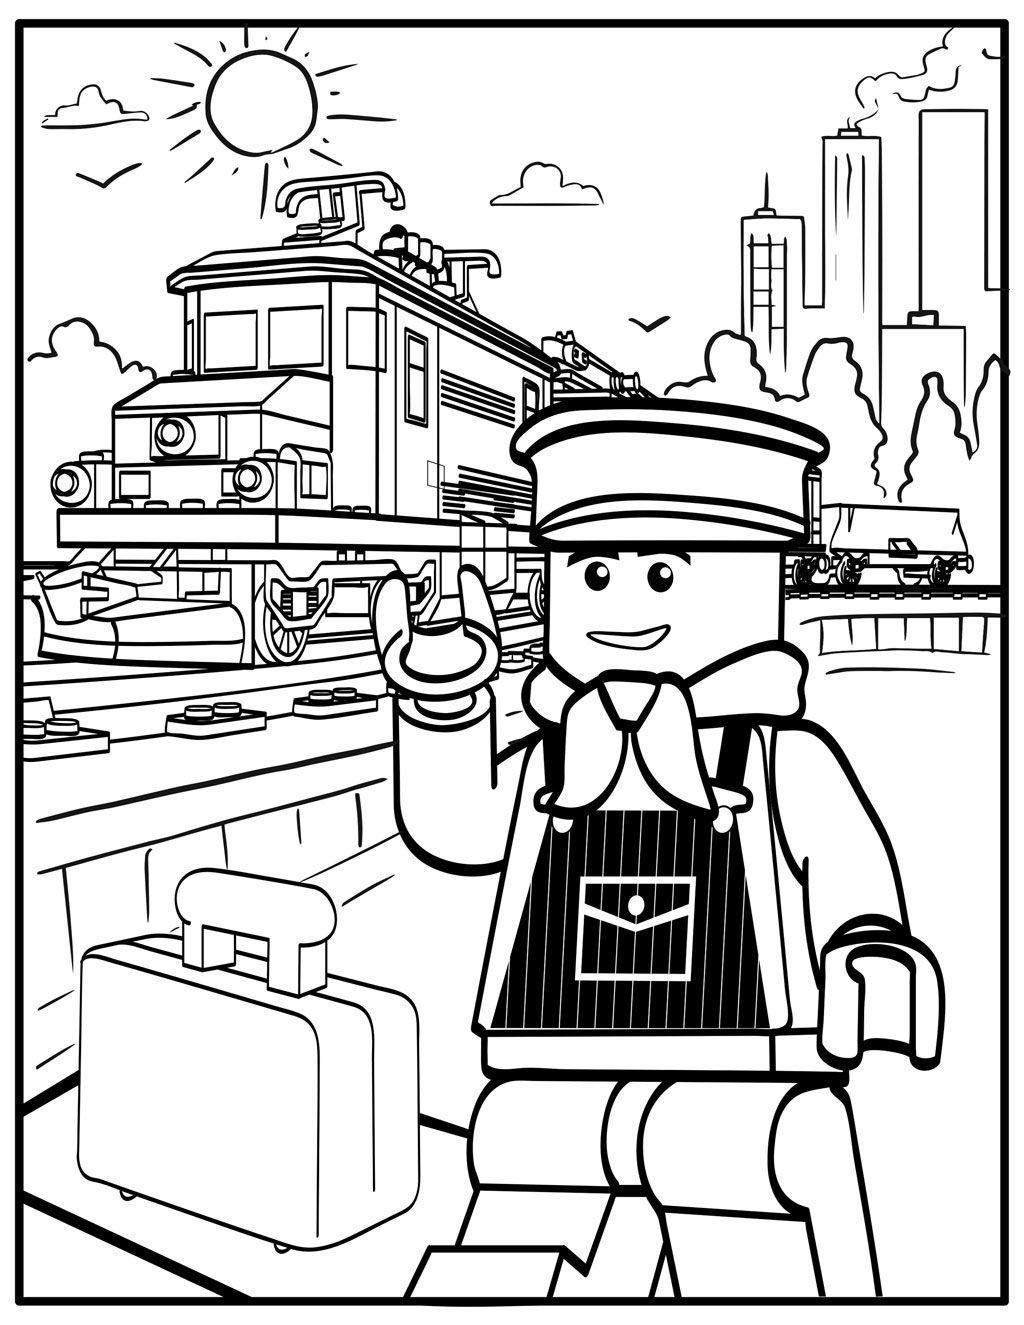 Lego Inspired Printable Coloring Pages Train Coloring Pages